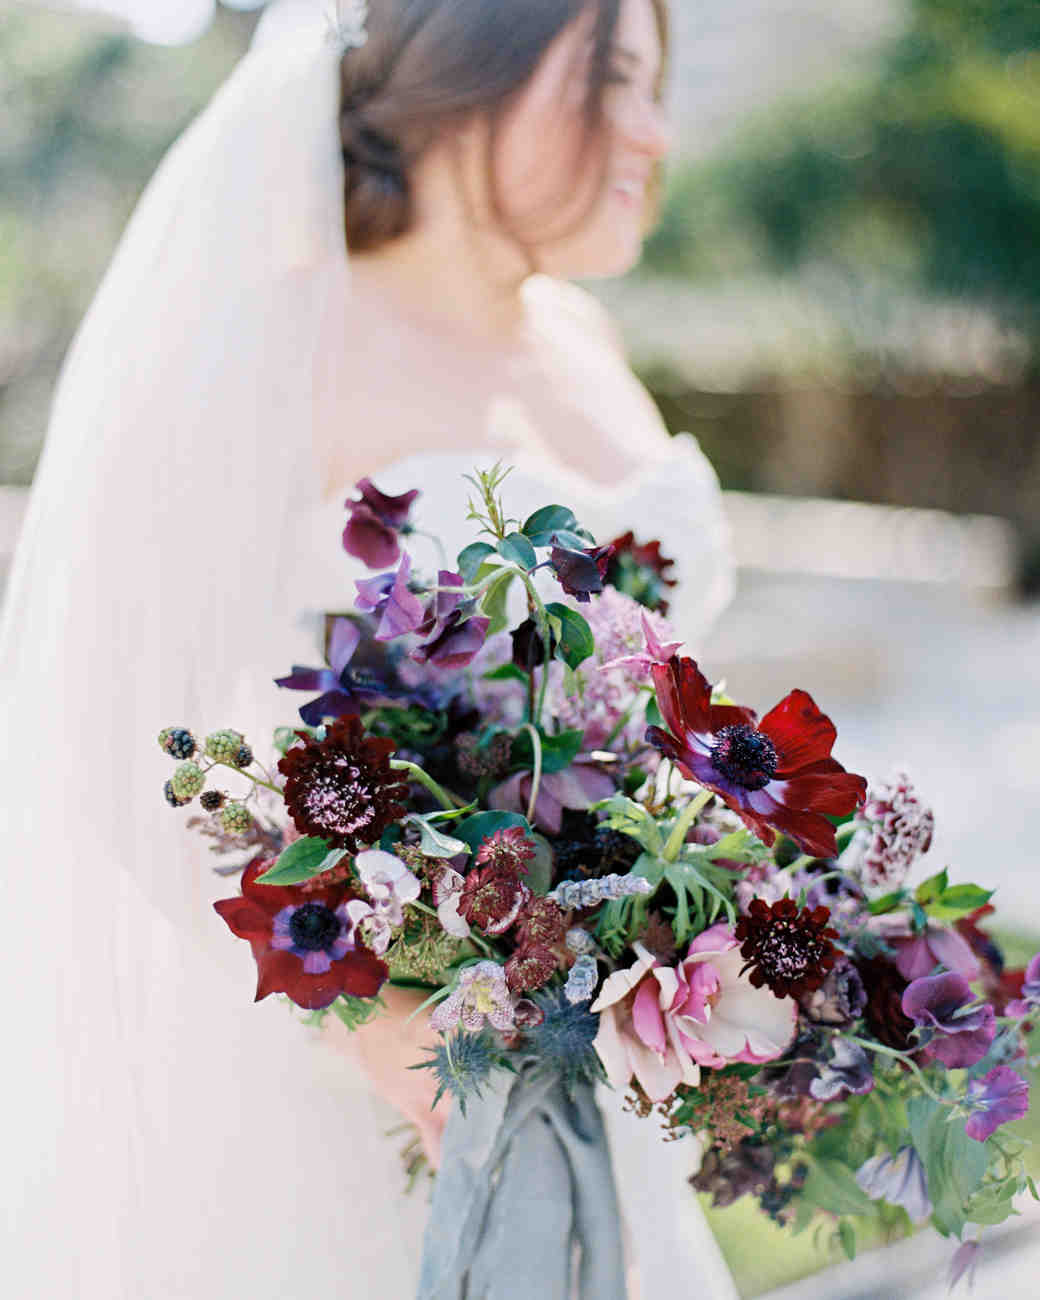 Wedding Flowers: 52 Gorgeous Winter Wedding Bouquets